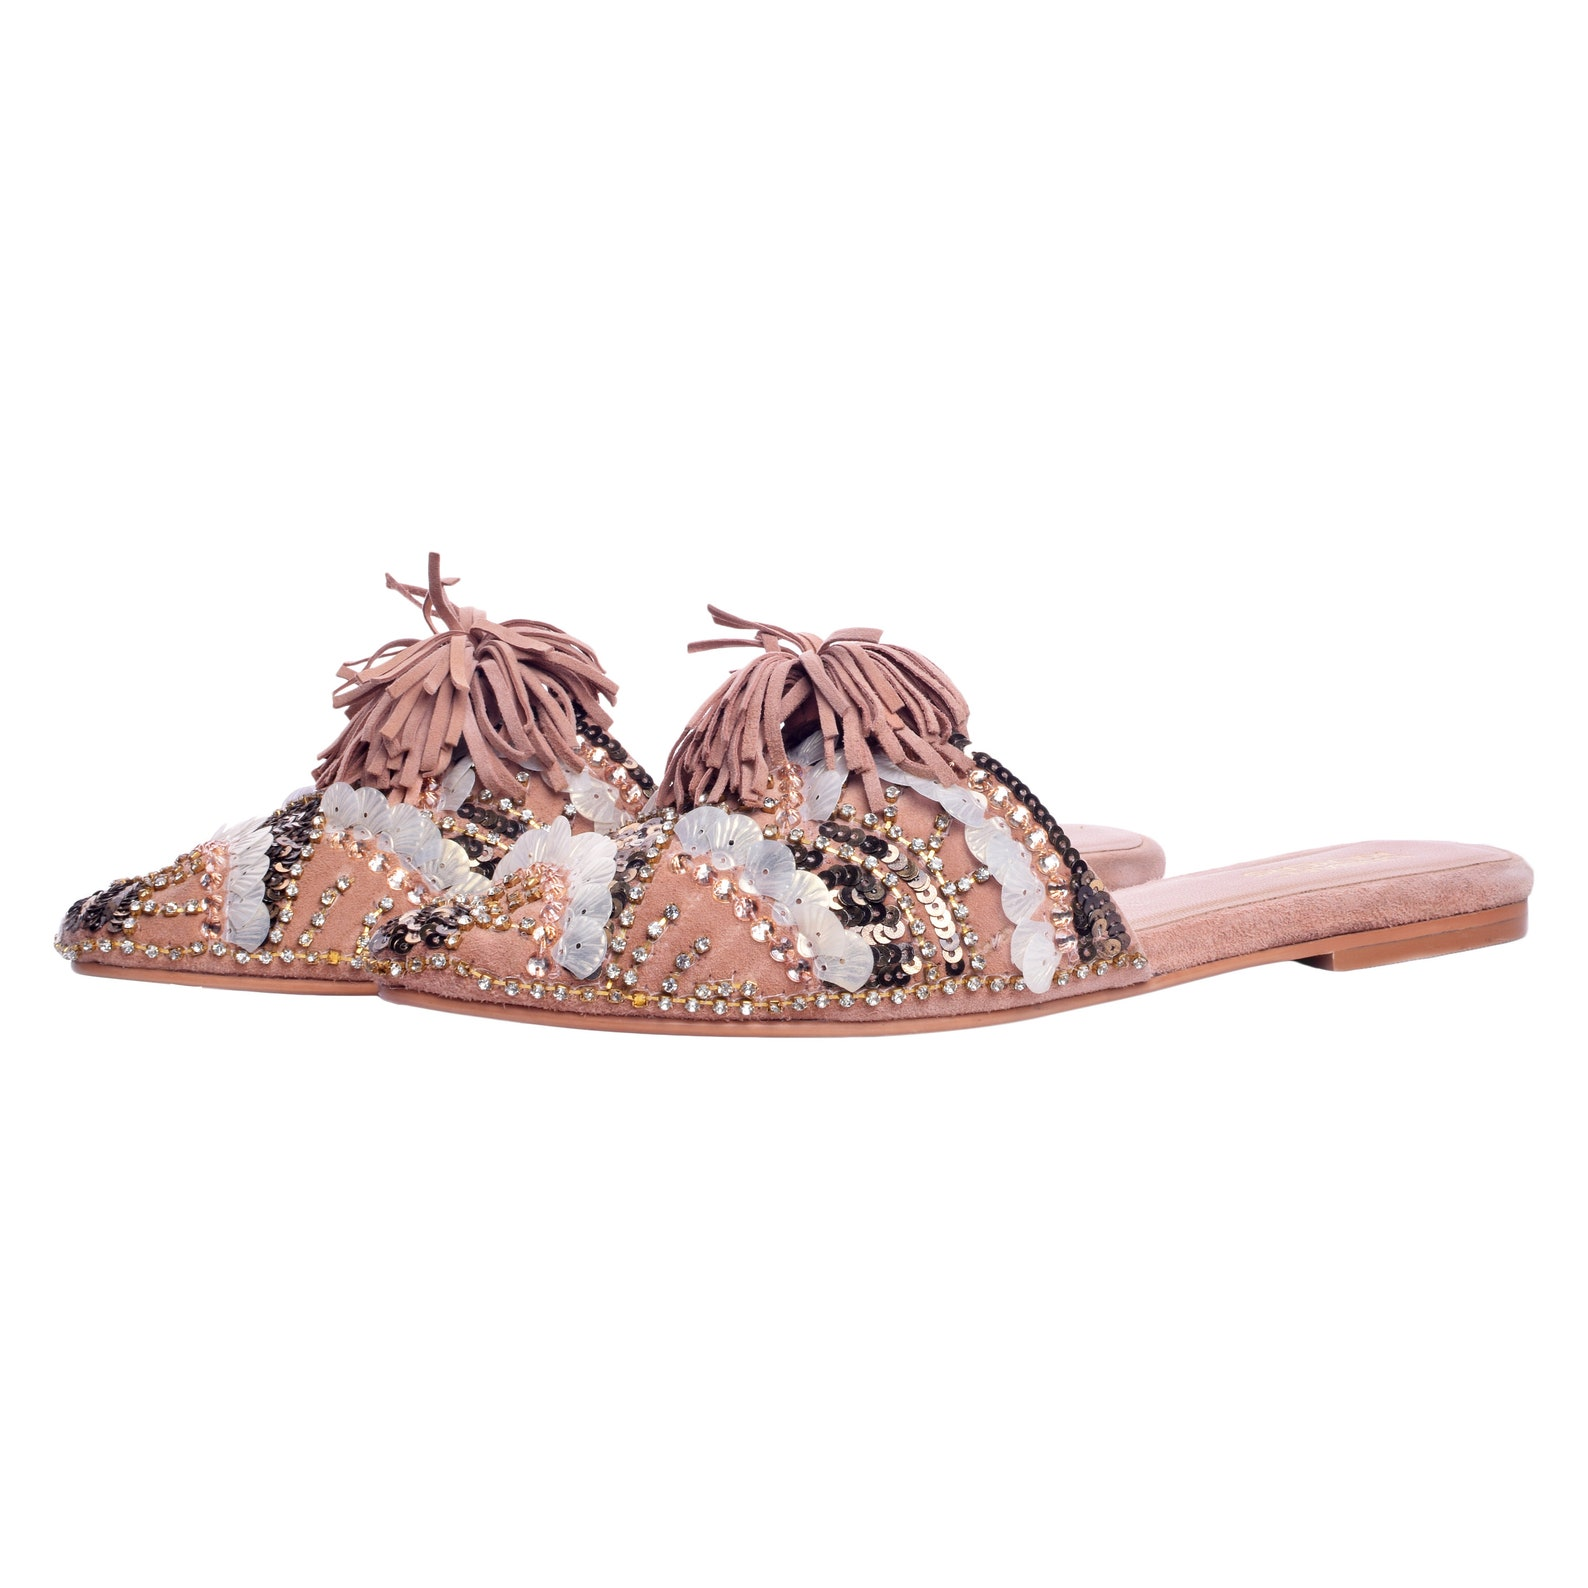 embroidered leather ballet flat sandal